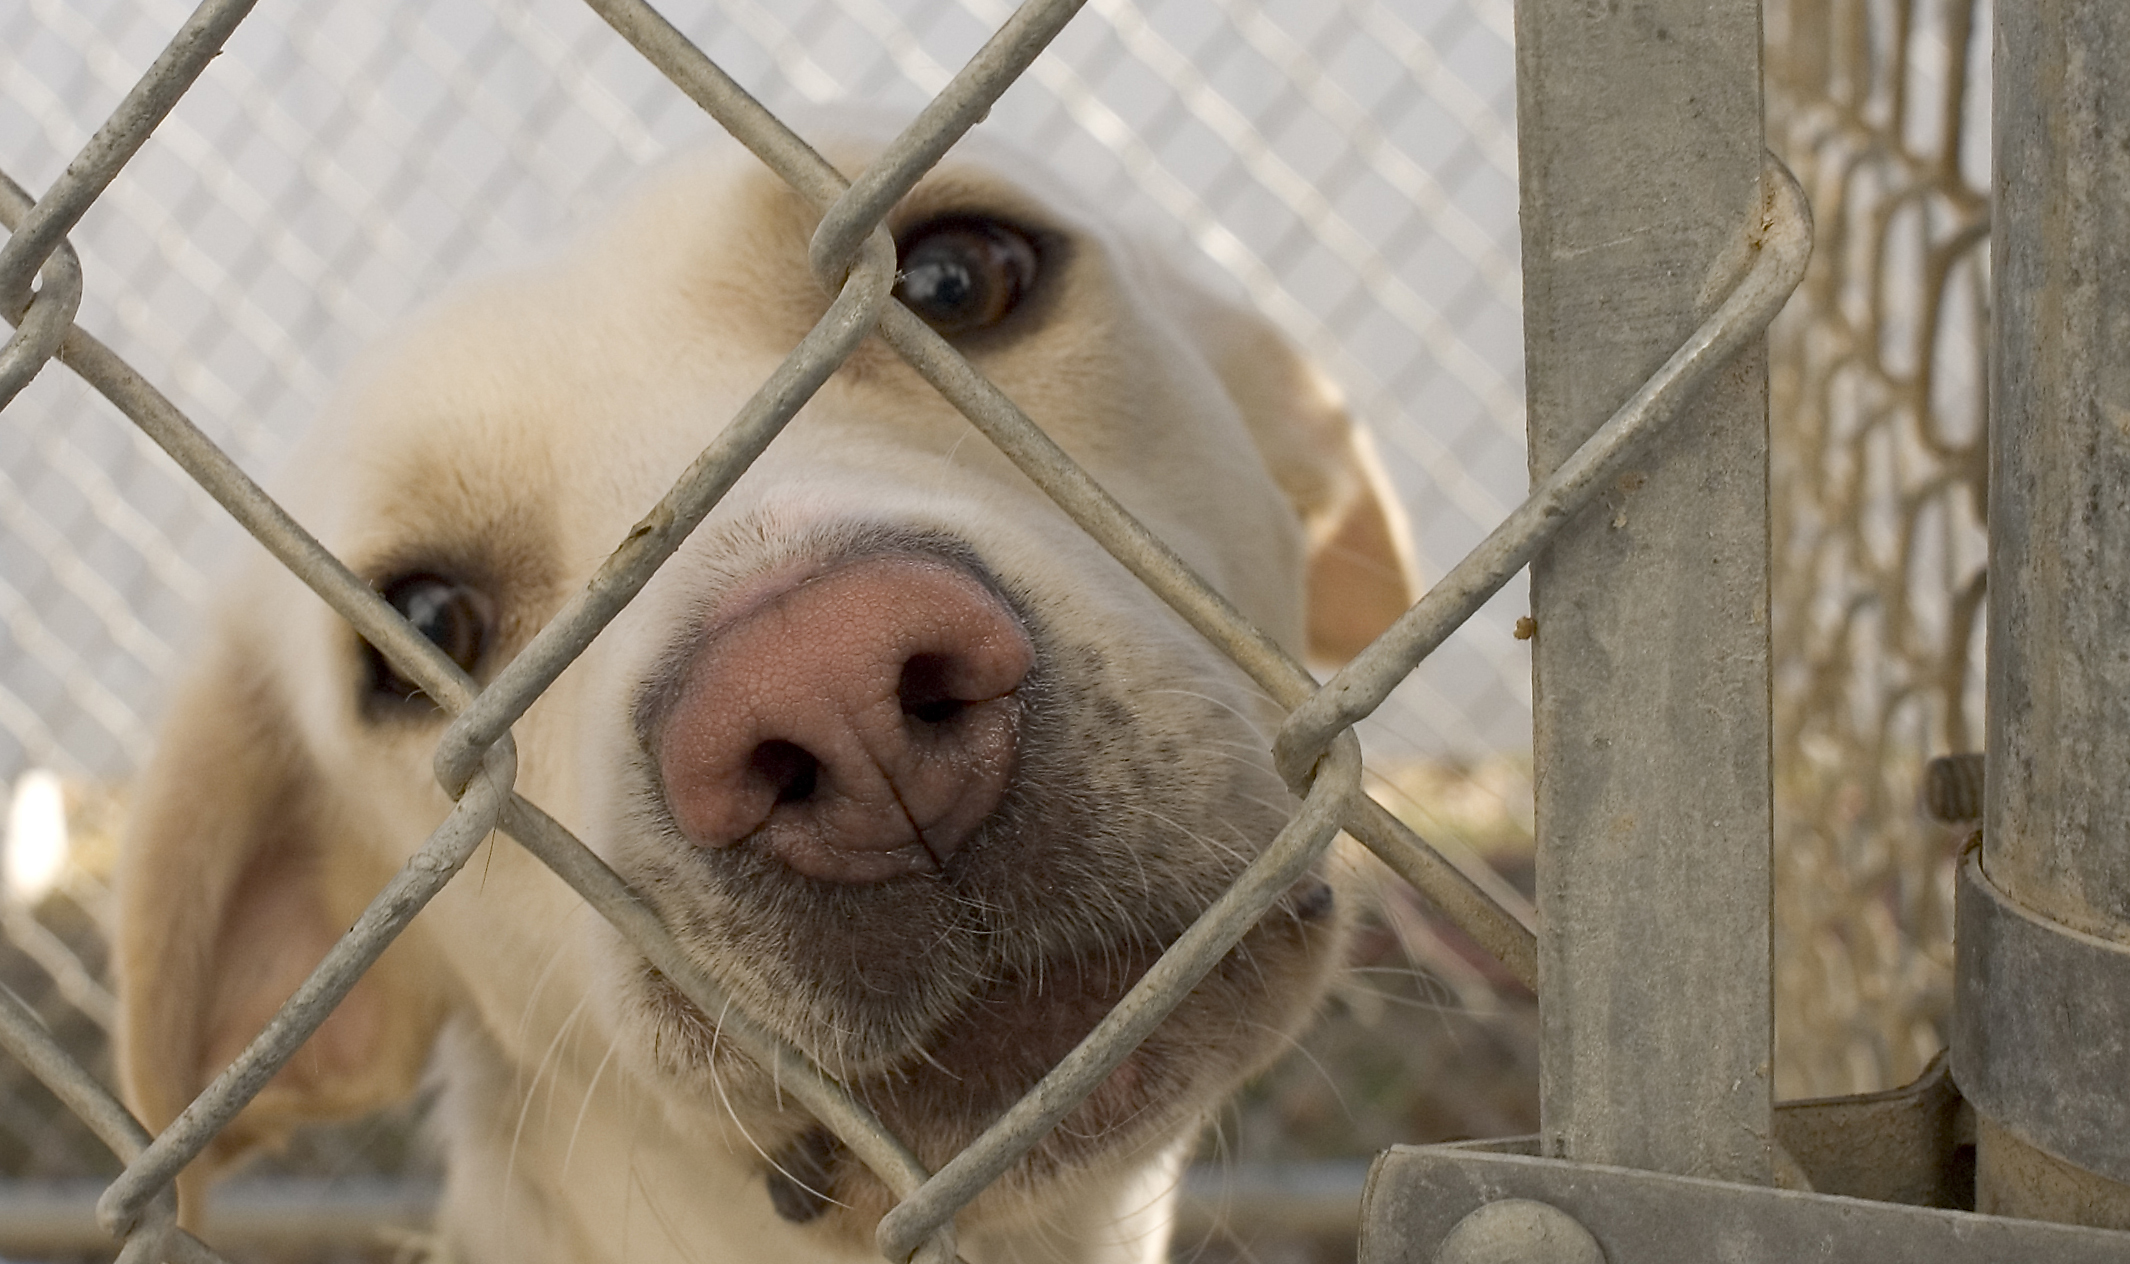 Dog_in_animal_shelter_in_Washington,_Iowa_114351